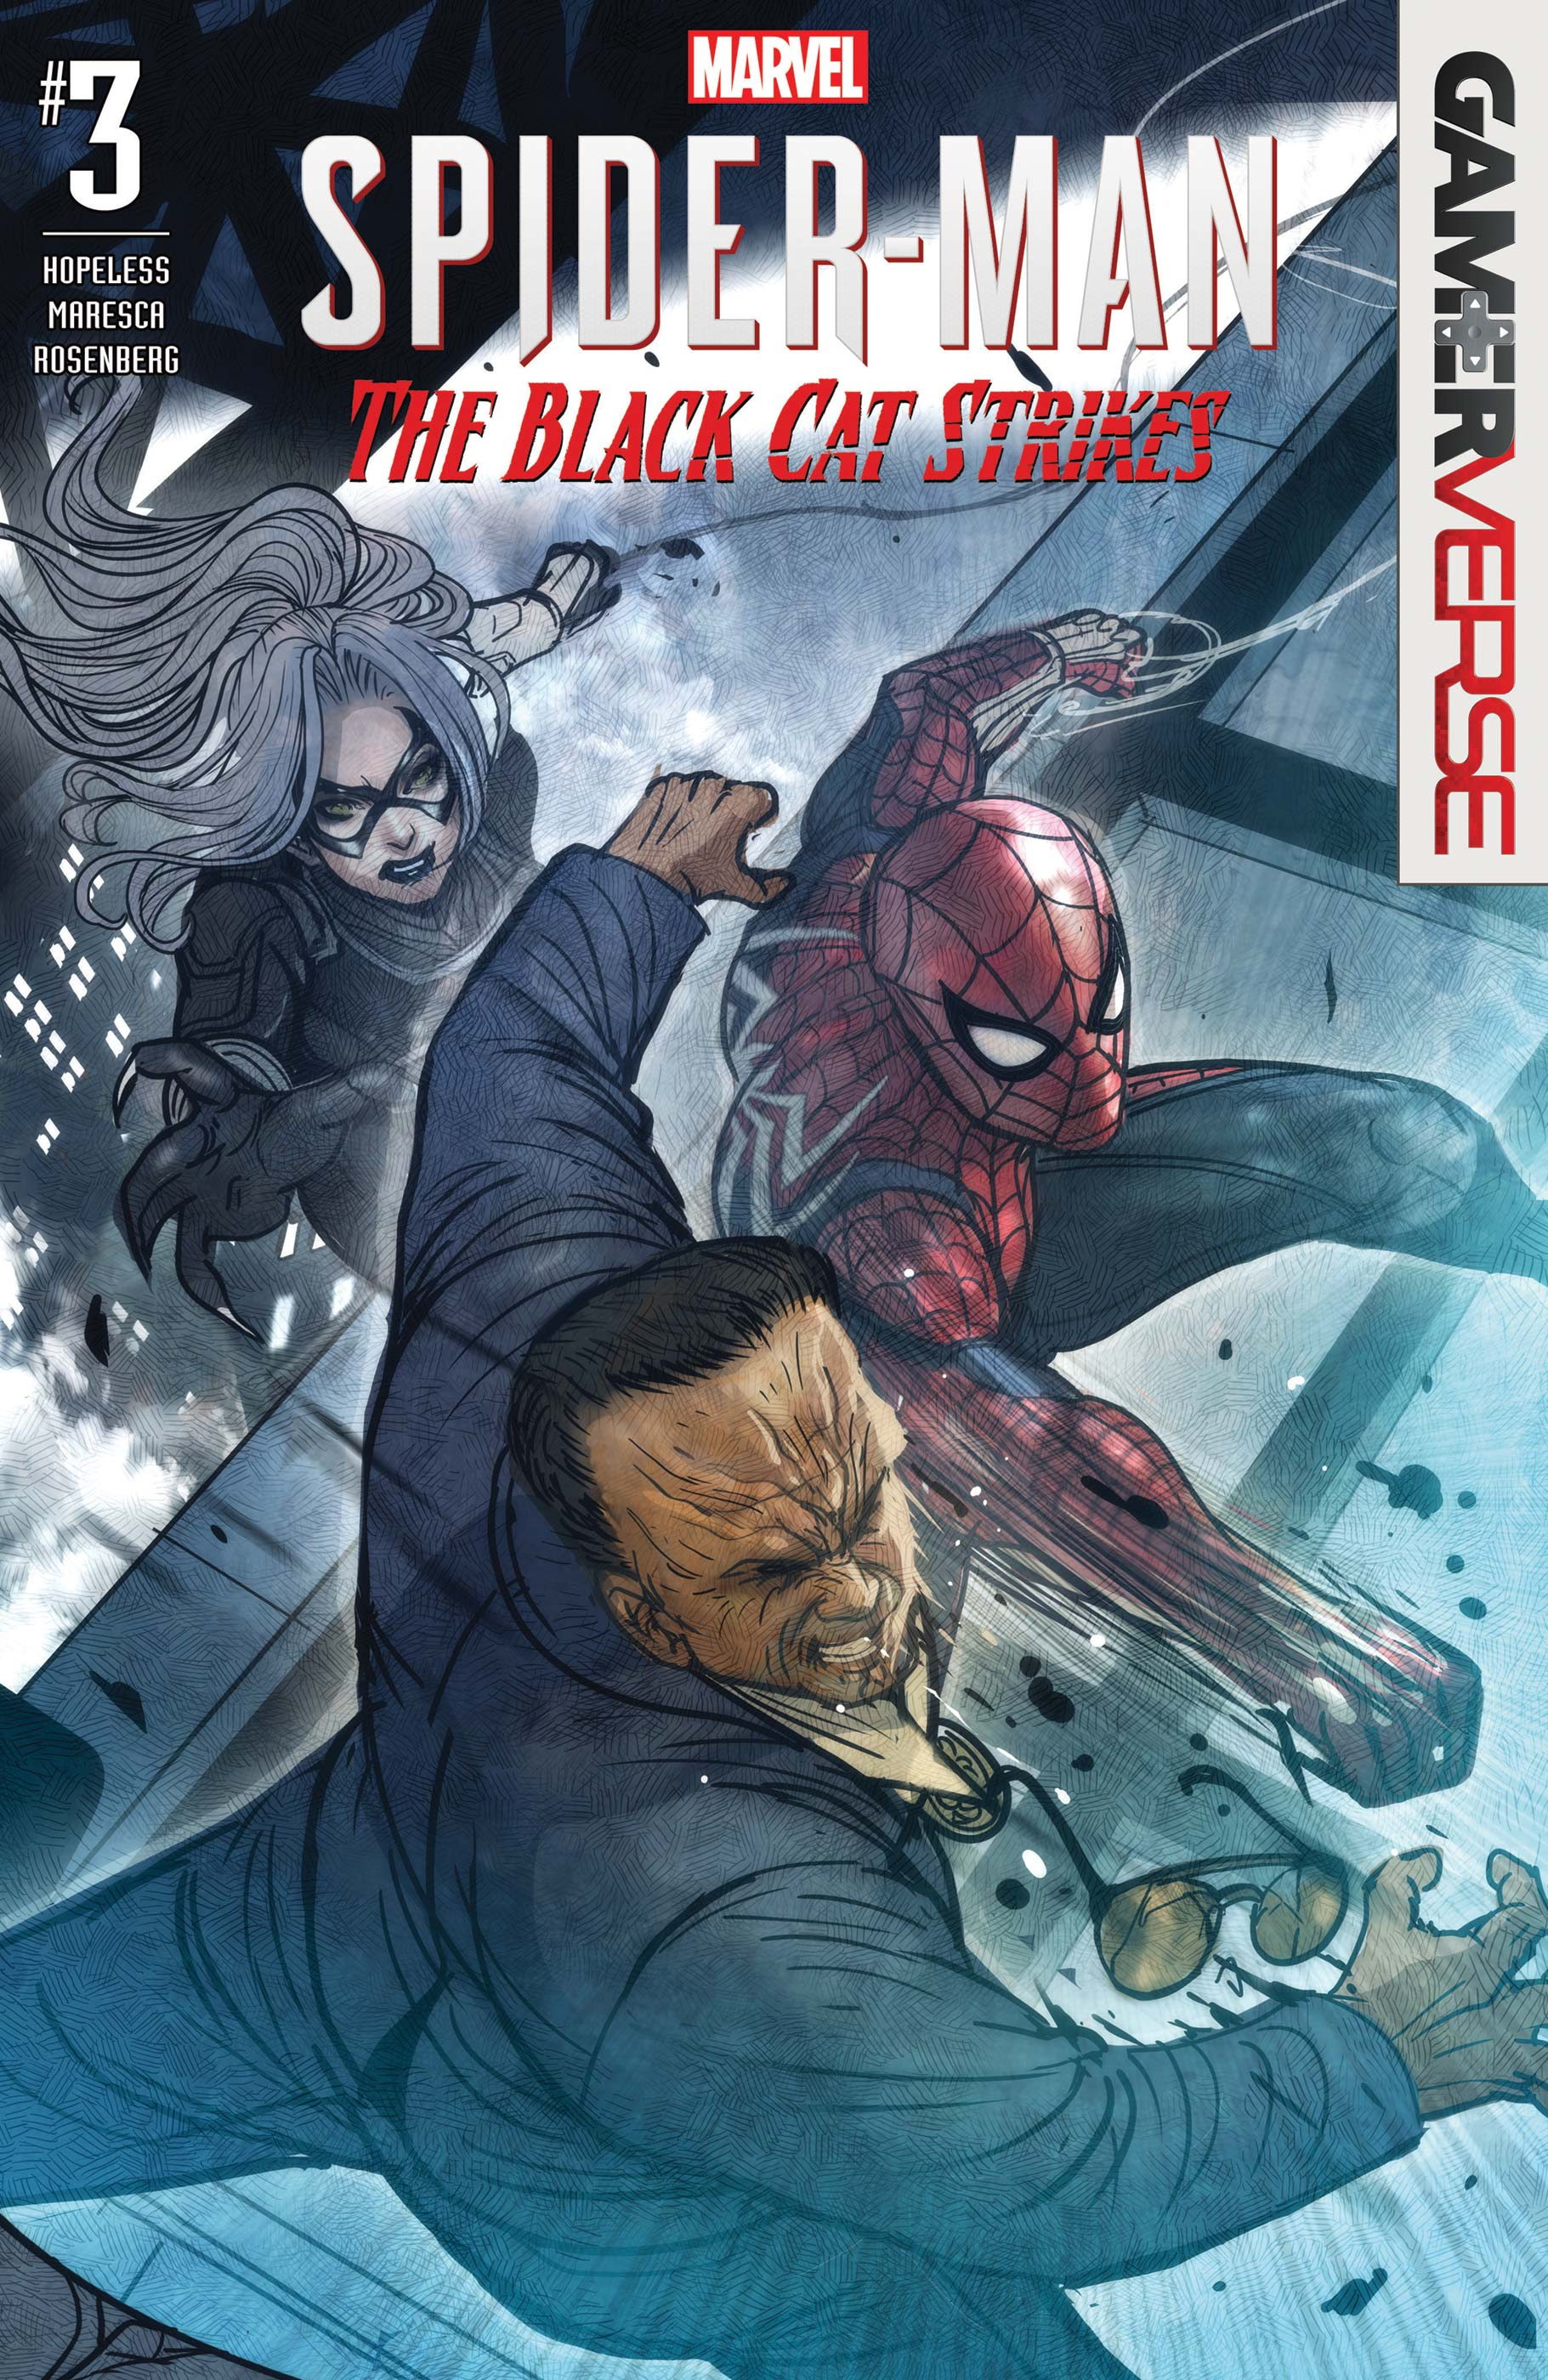 Marvel's Spider-Man: The Black Cat Strikes (2020) #3